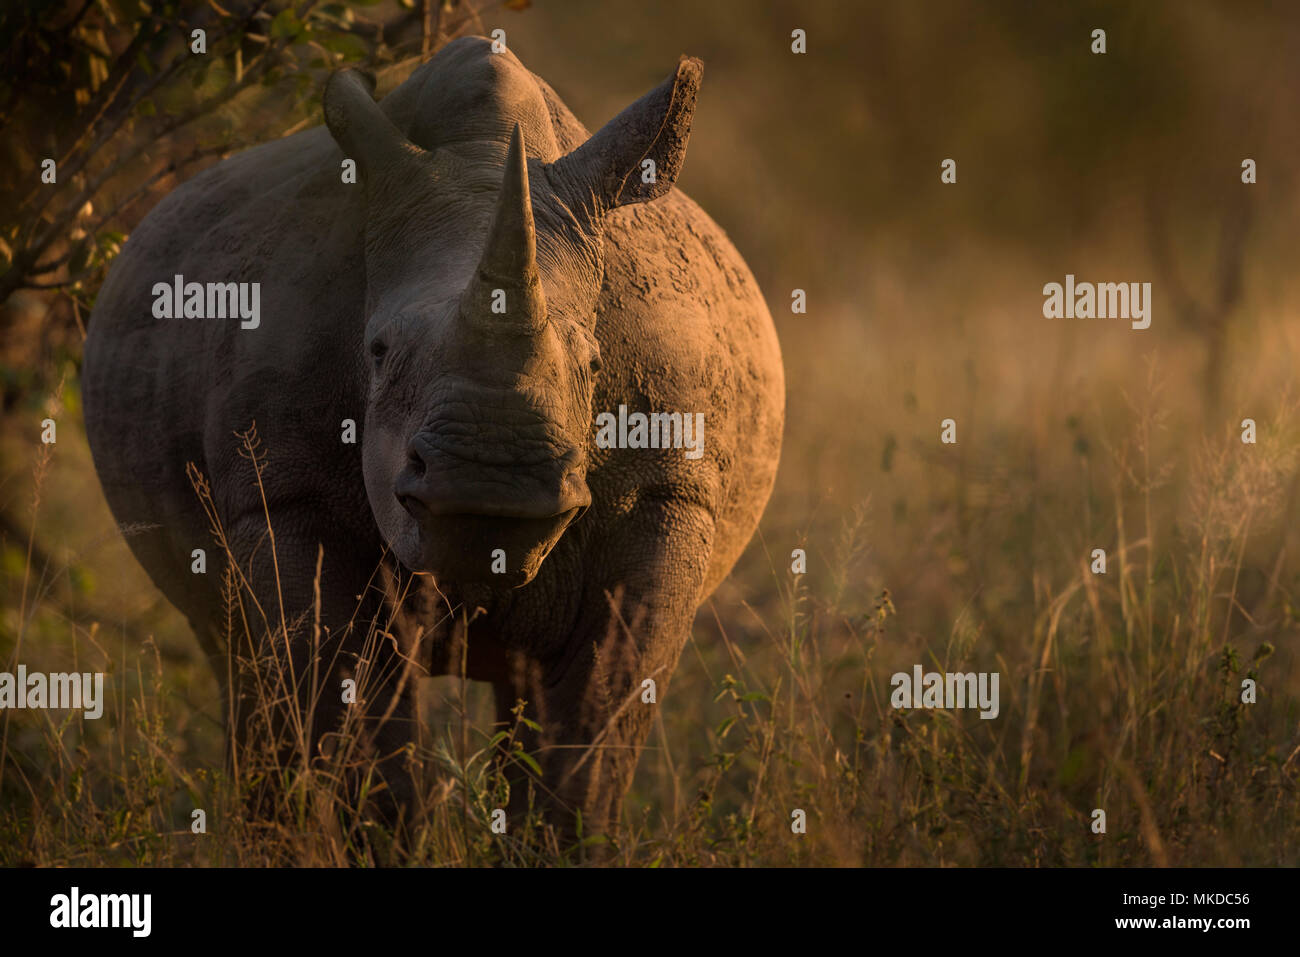 White Rhinoce?ros (Ceratotherium simum), Kruger national parc, South Africa - Stock Image